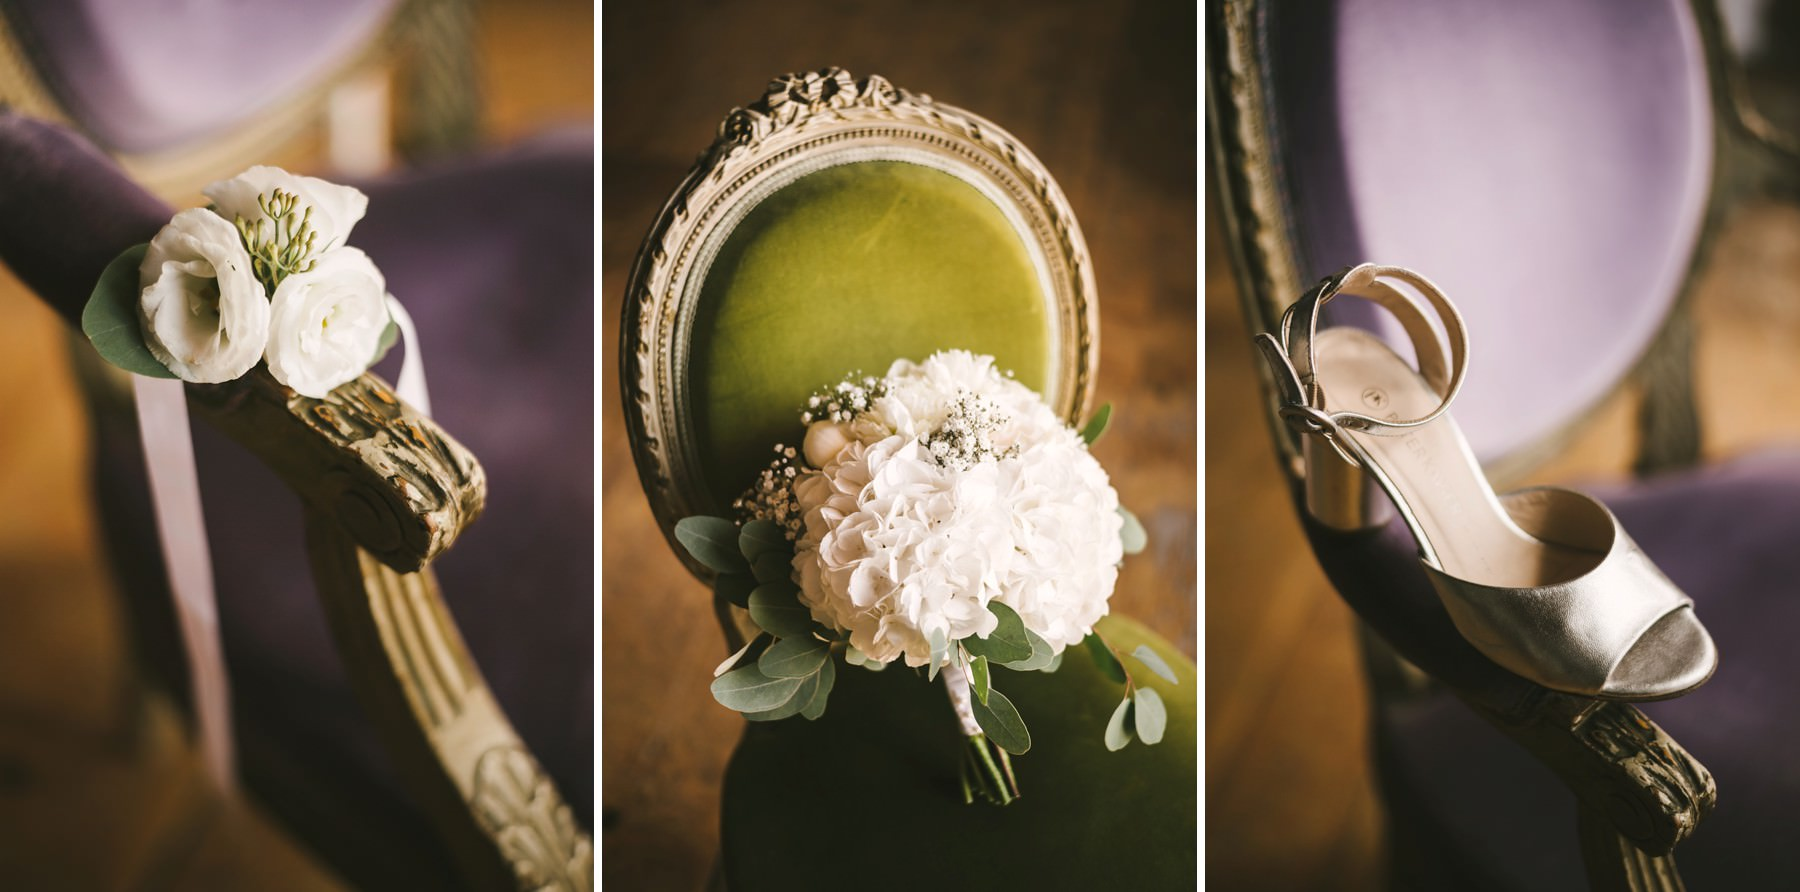 Lovely bride details. Destination wedding in Tuscany at Montelucci Country Resort